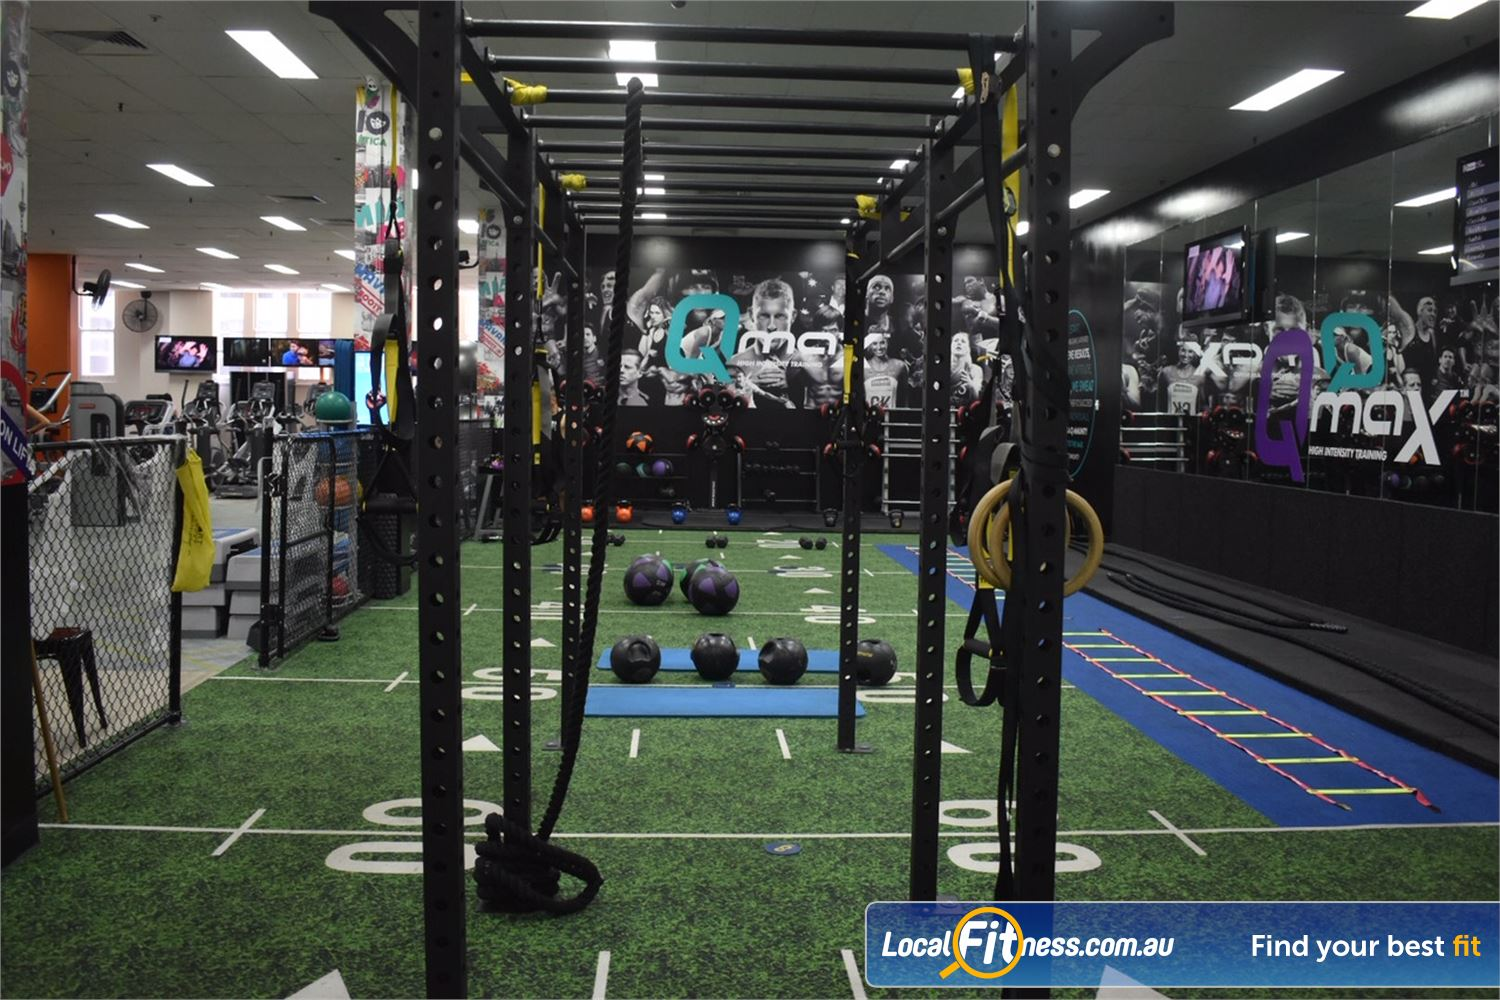 Fit n Fast Near World Square FNF Liverpool St includes a dedicated Sydney HIIT gym space.